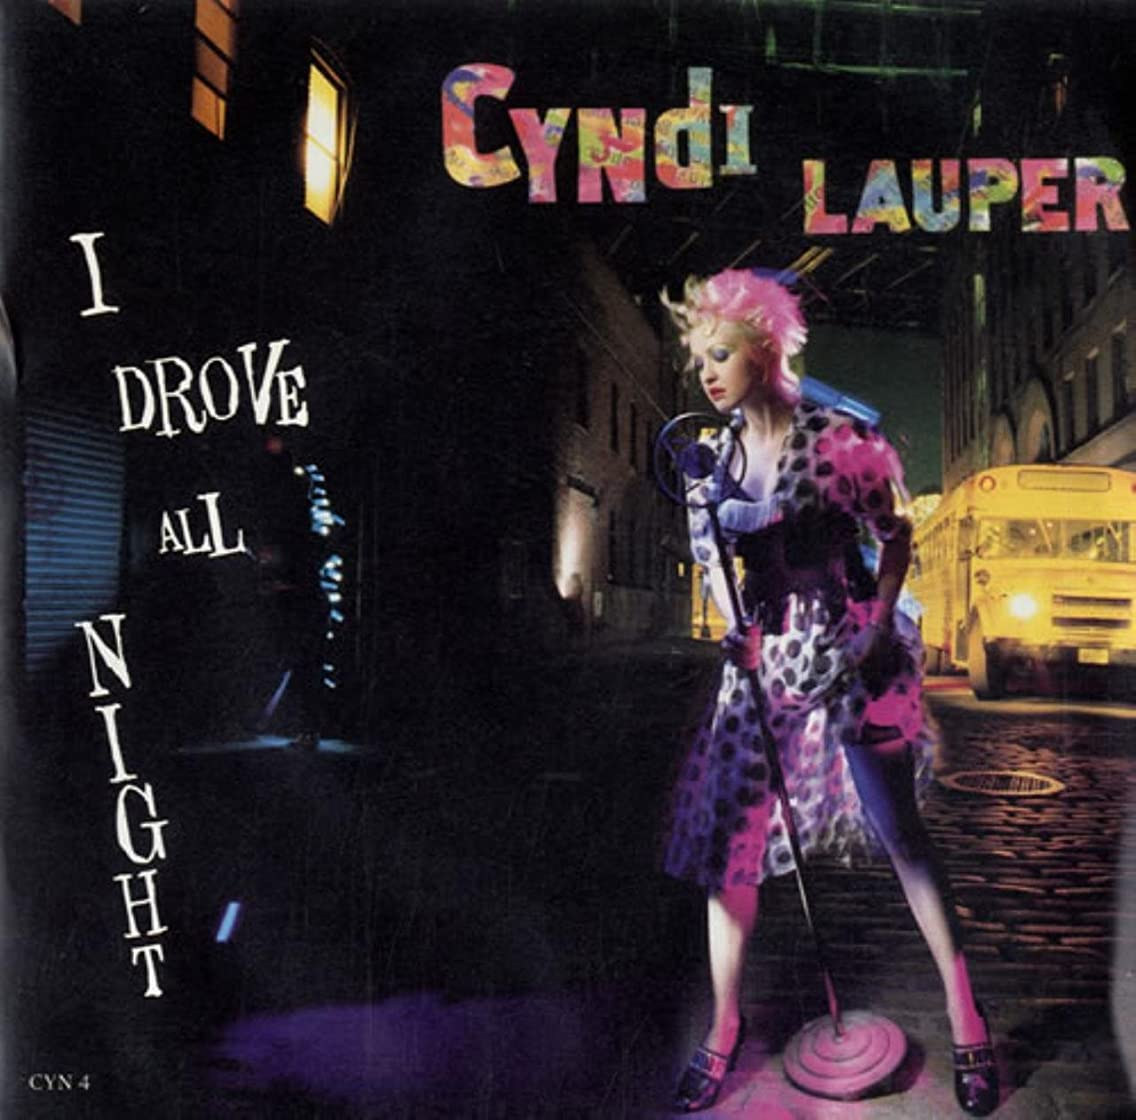 I Drove All Night - Cyndi Lauper 45